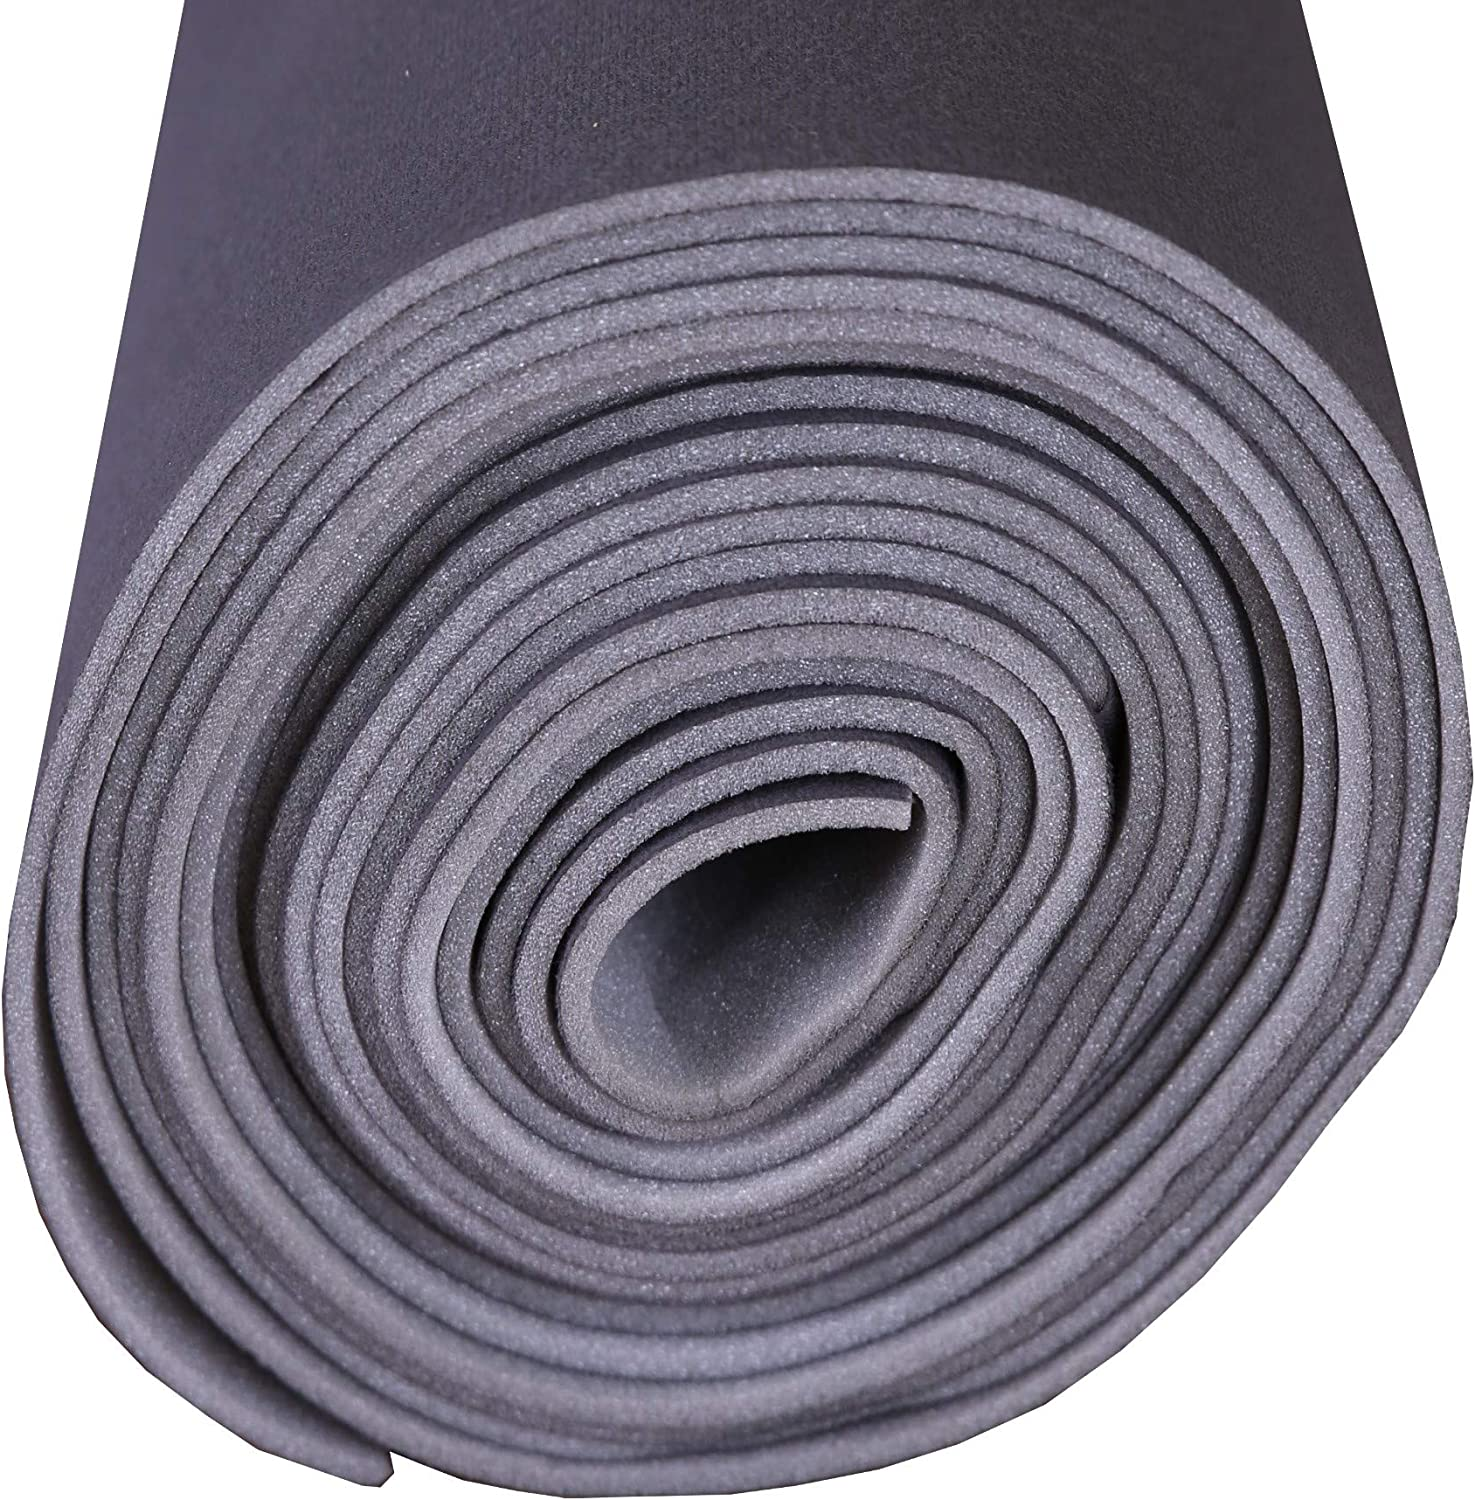 60 x 60 Dk Gray Auto Headliner Ceiling Fabric Material 3//16 Foam Backing